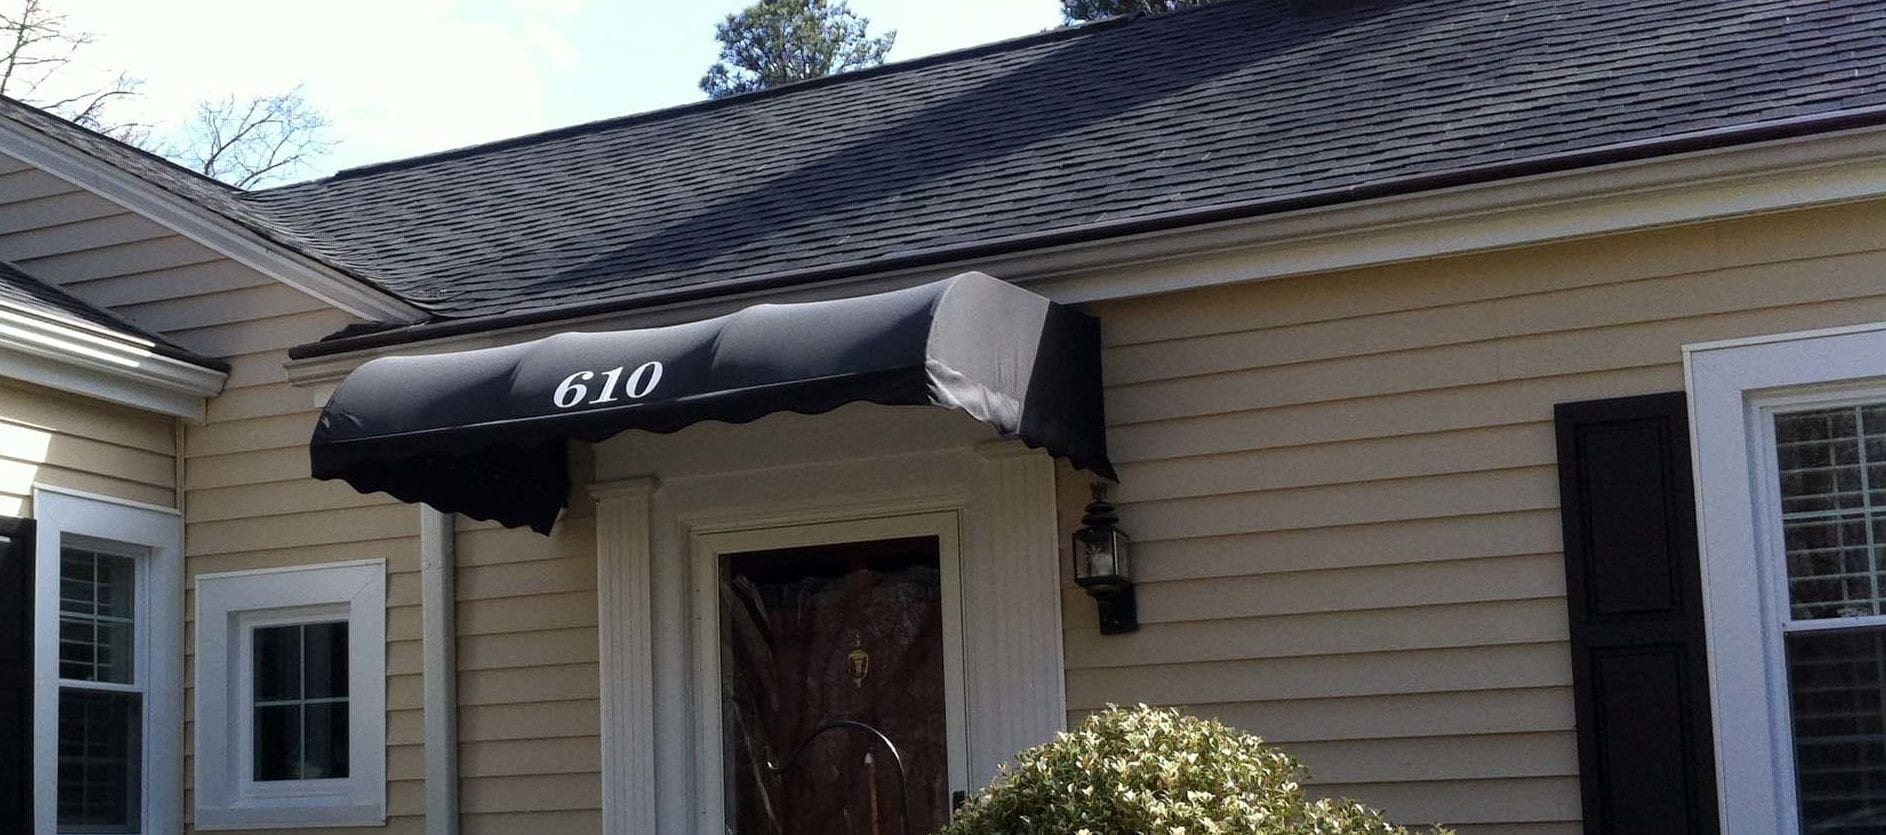 Convex Style Door Awning - Door and window awnings - Greenville Awning Company in Greenville, SC